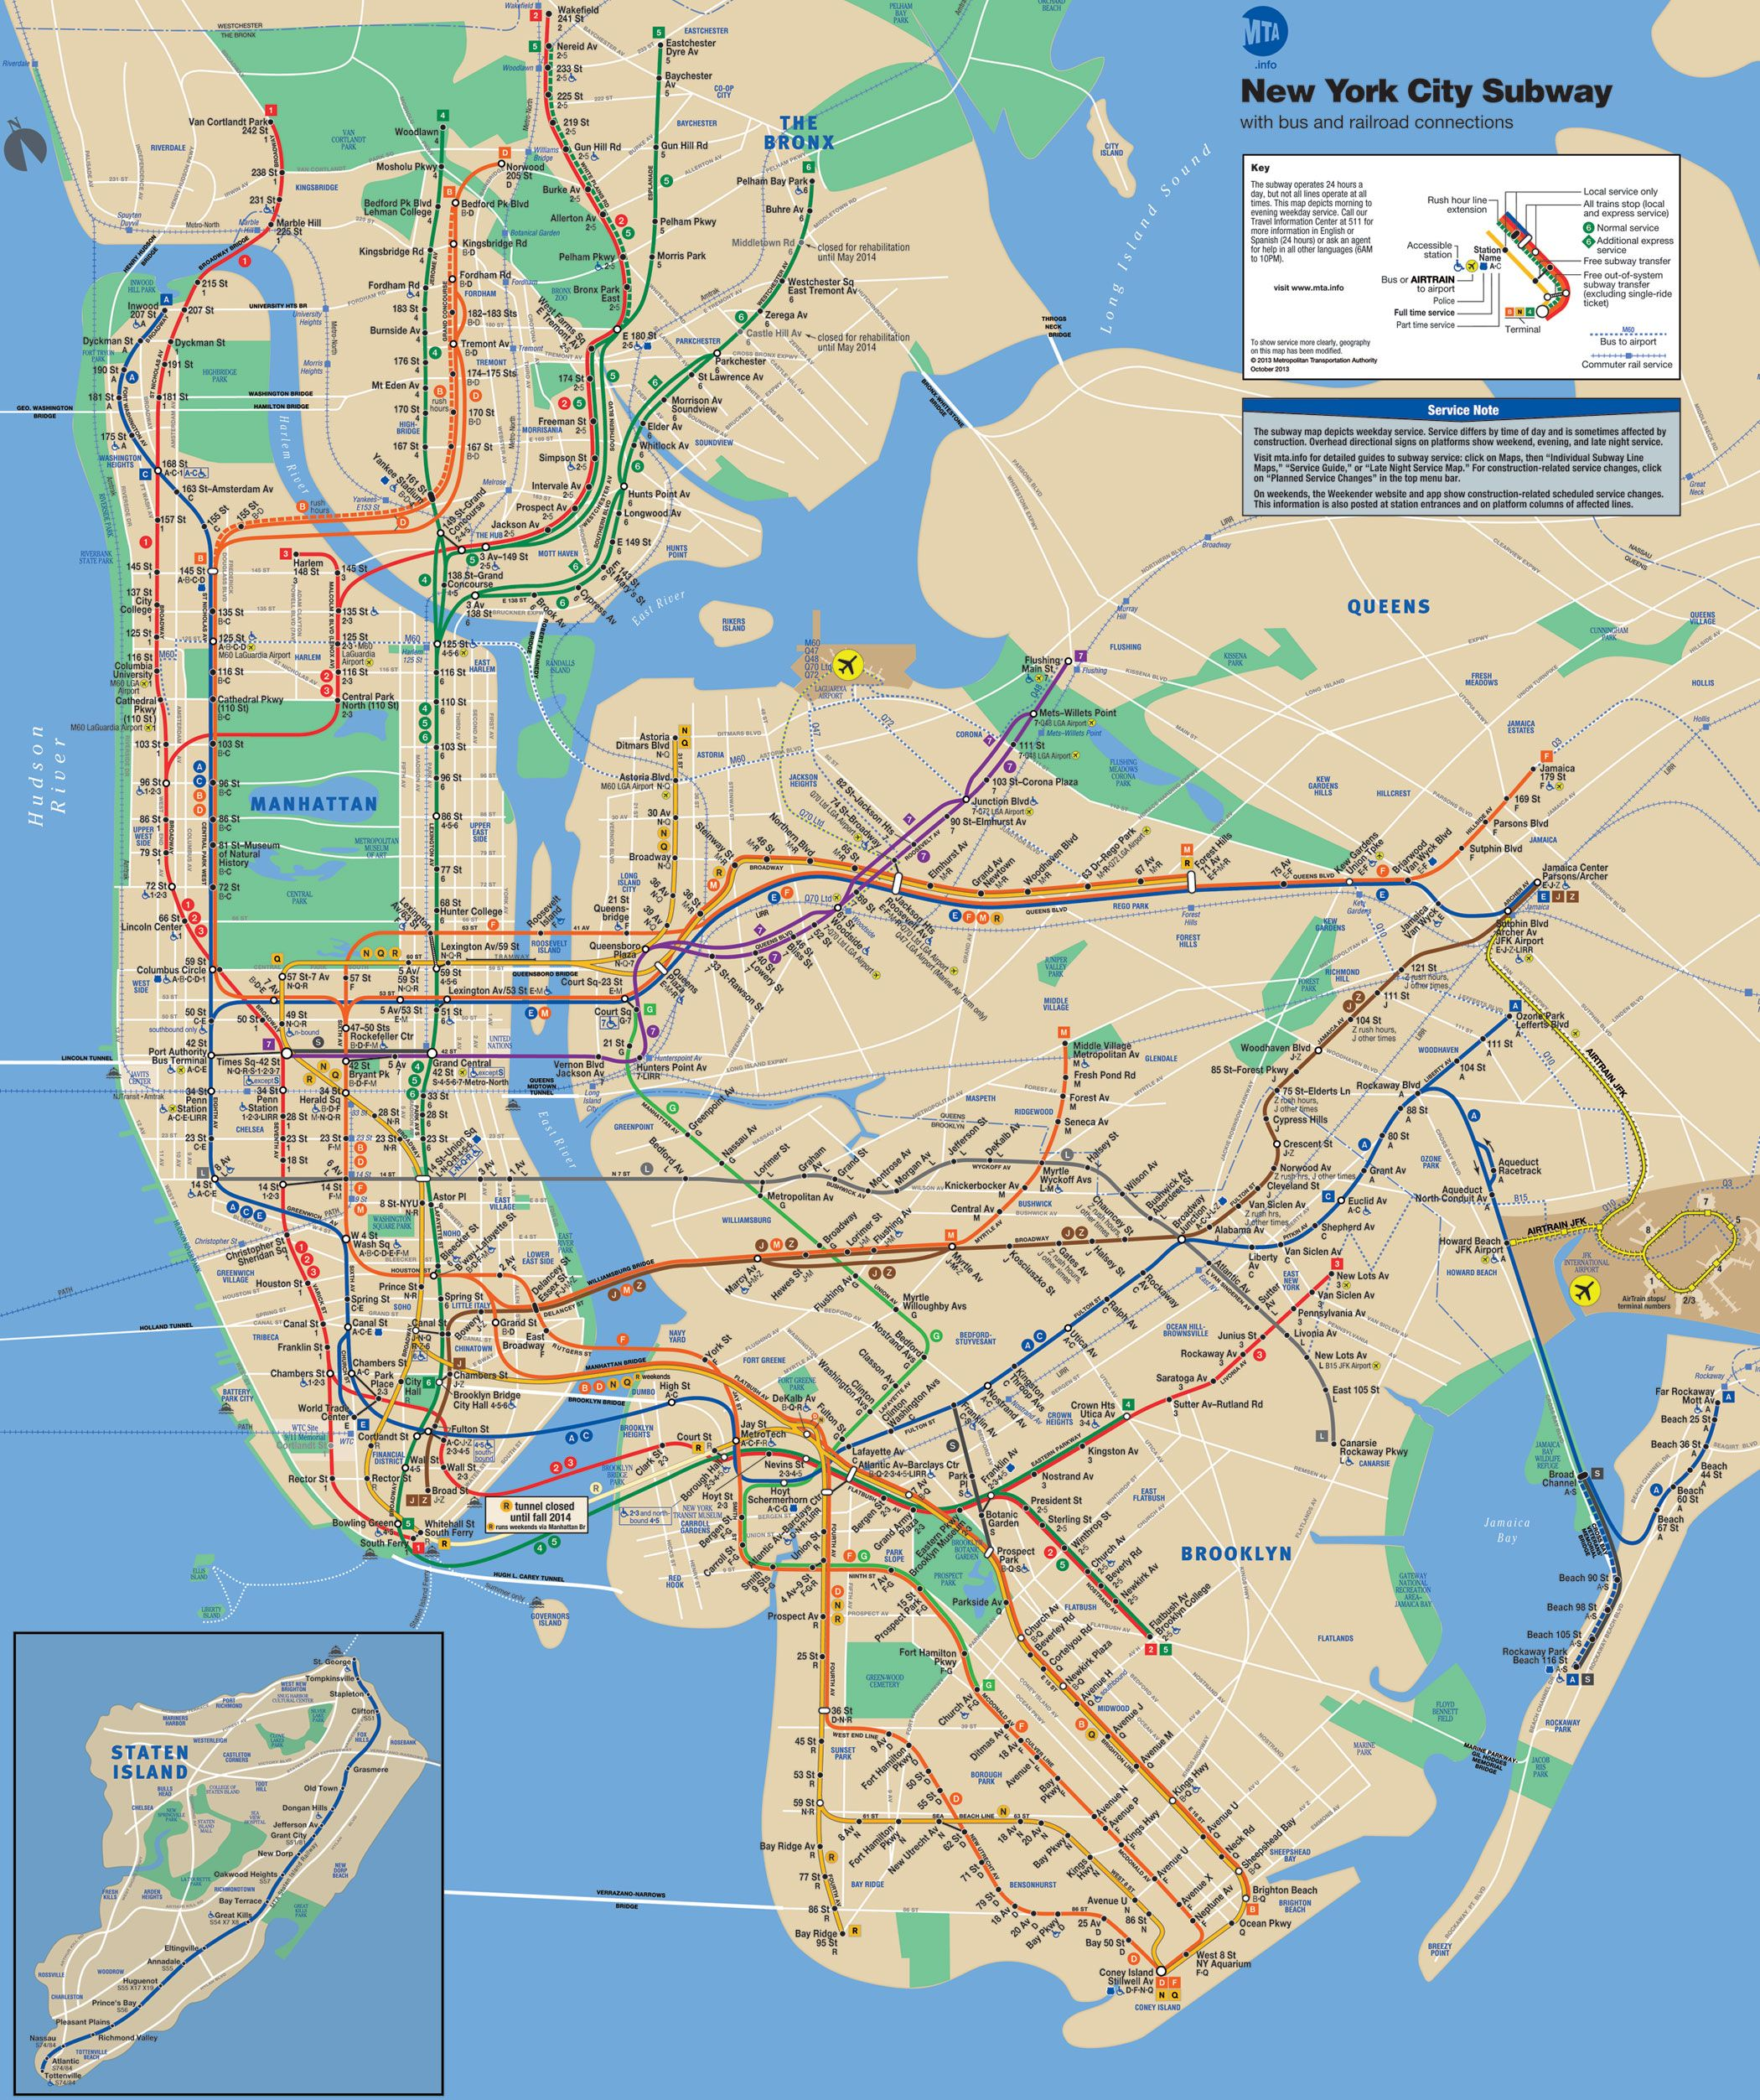 Ideal Nyc Subway Map Efficient.Mta Info Mta Subway Map Places I Want To Go In 2019 Map Of New